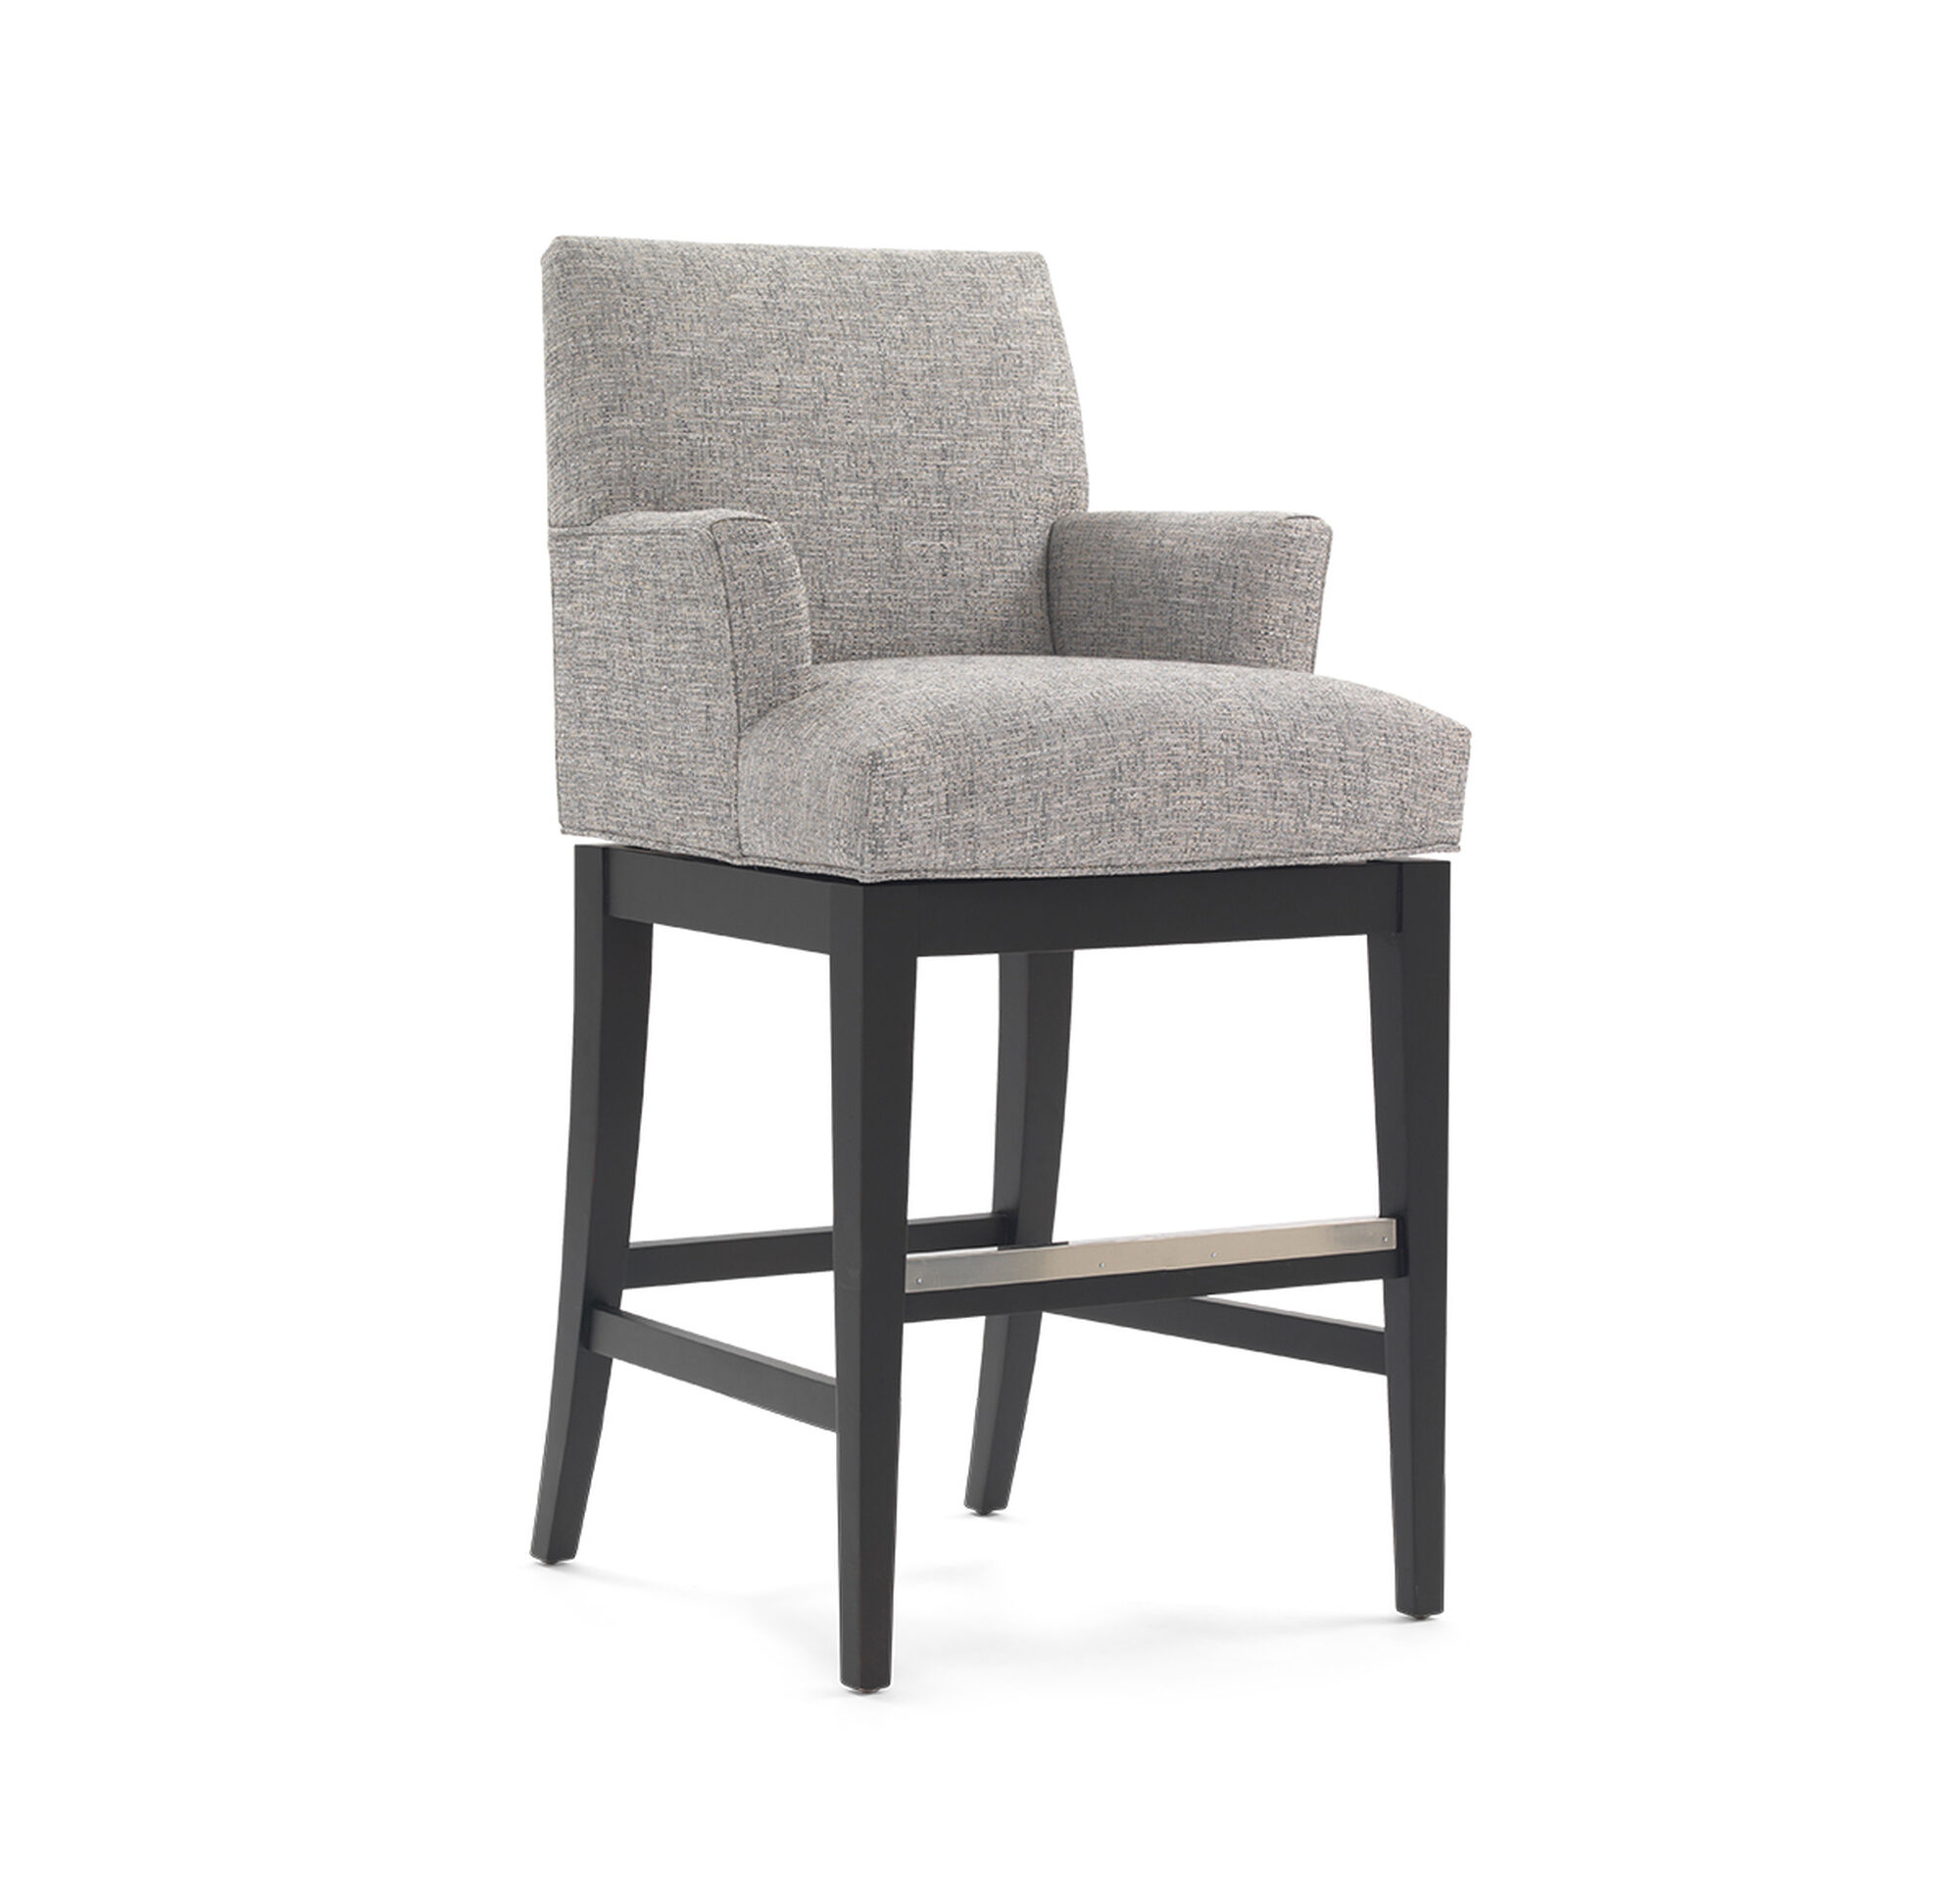 Stool Chairs With Arms Quickly Compare Dentist Chairs